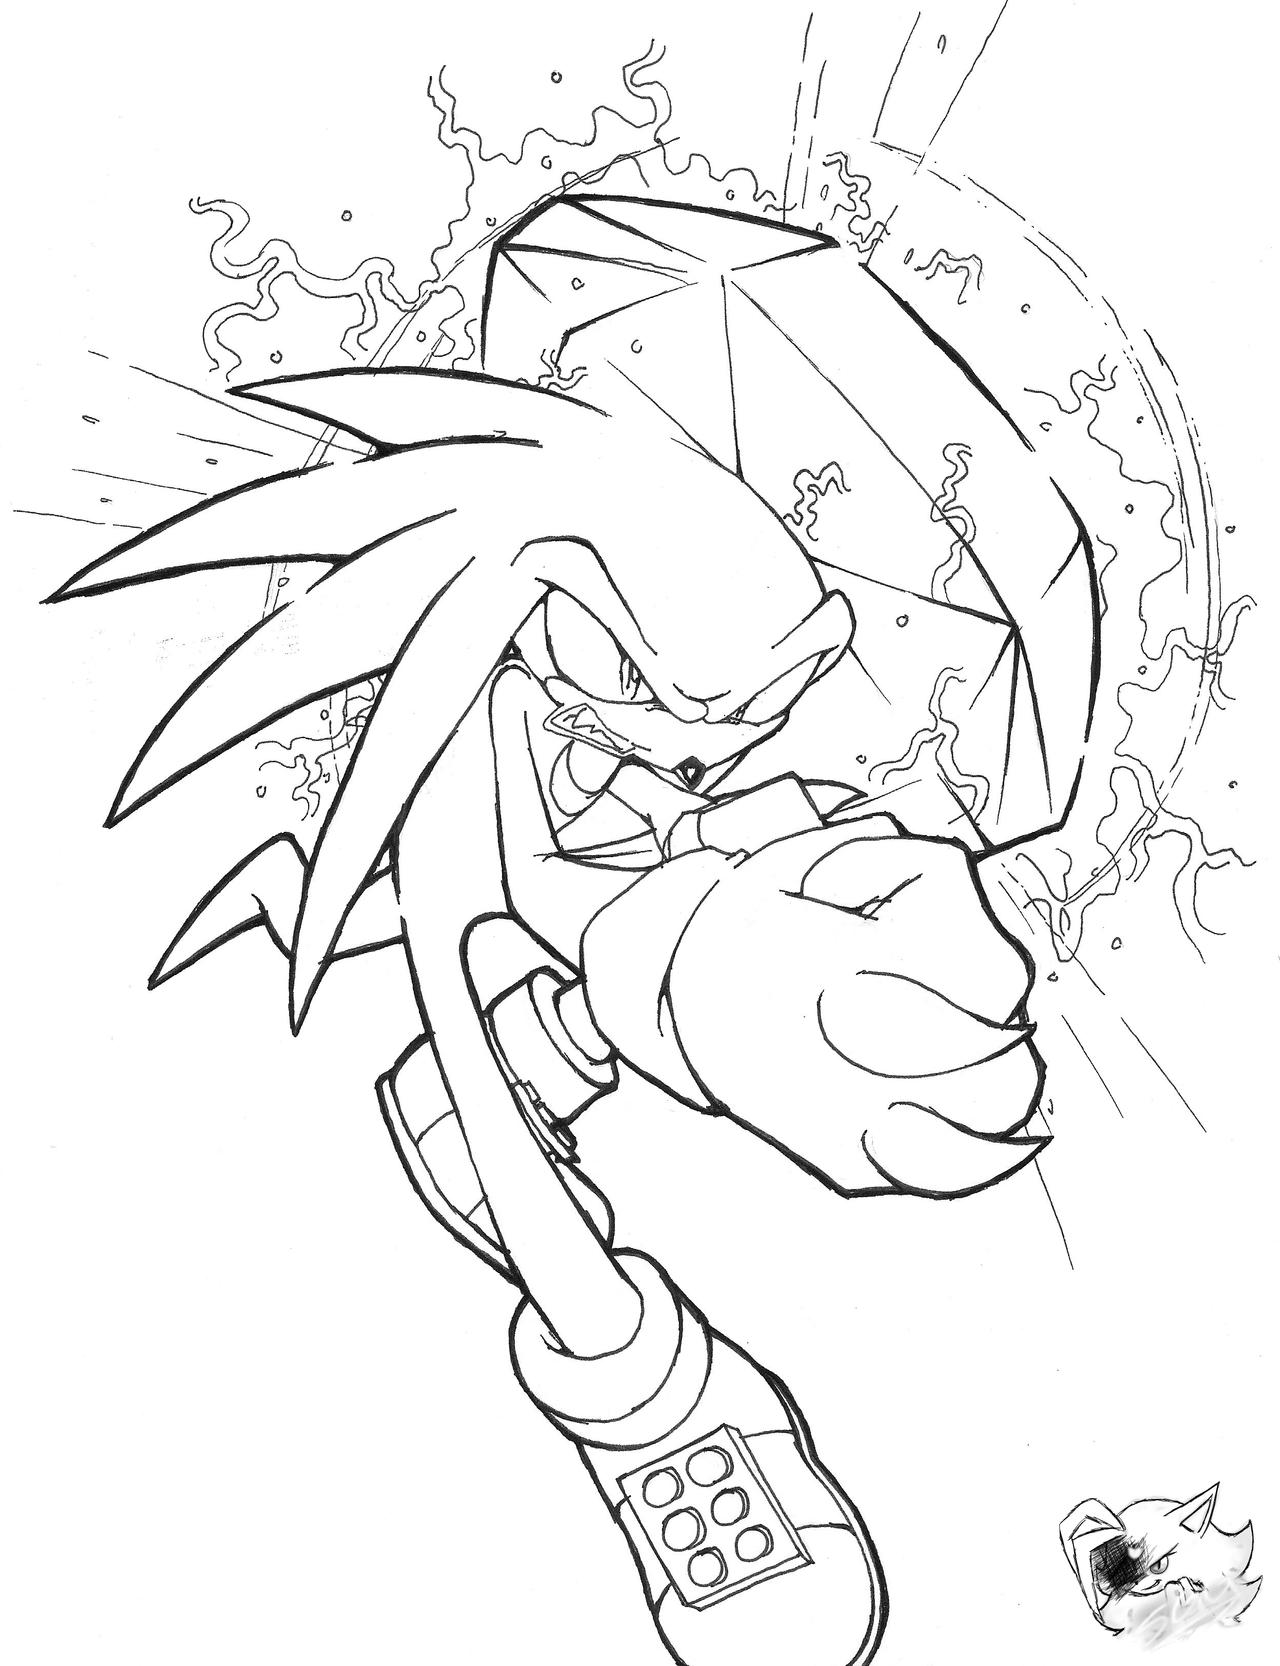 knuckles the echidna coloring pages - photo#24